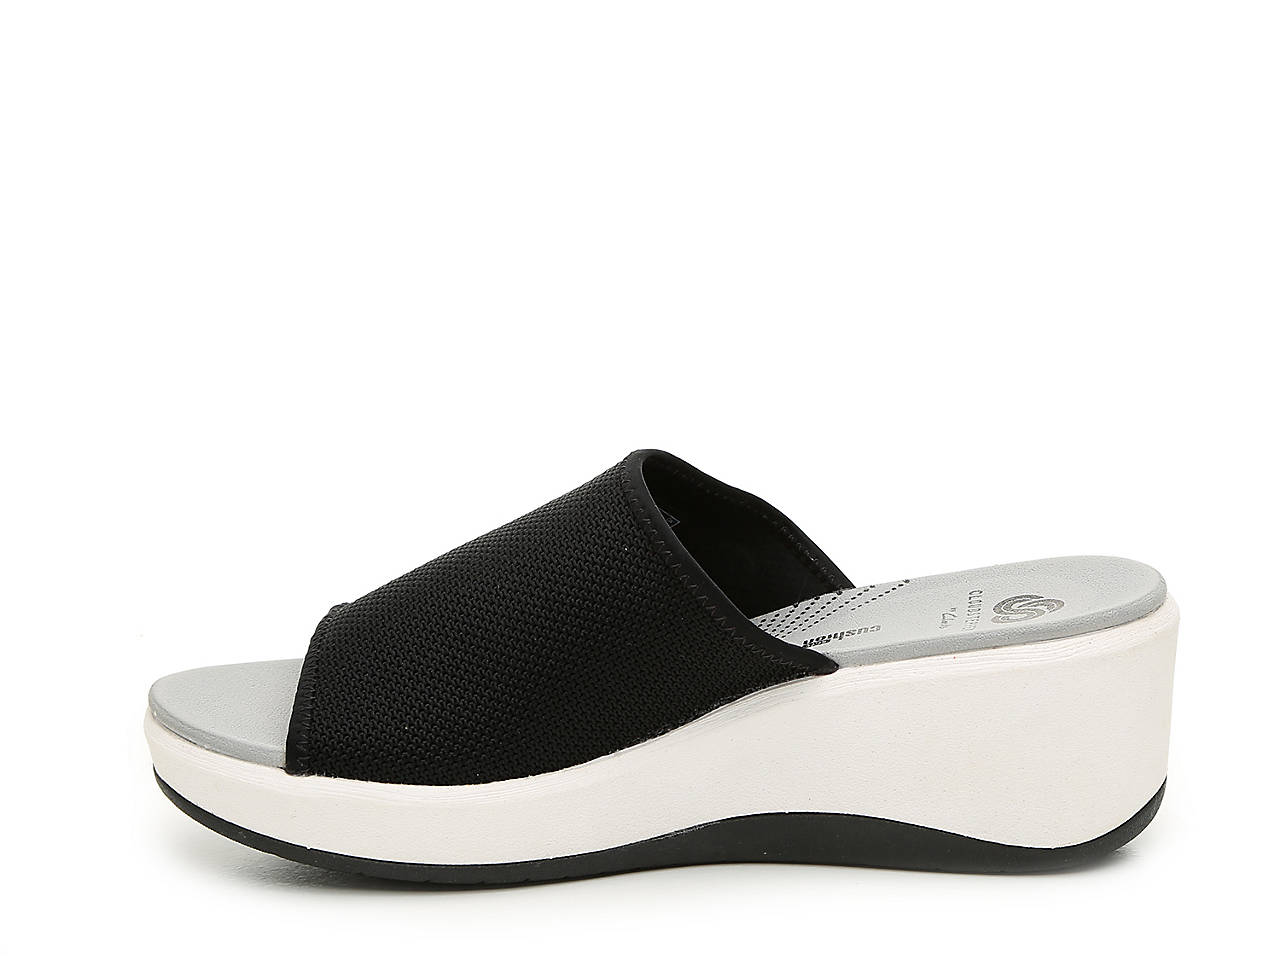 3d1251a2b0e6 Cloudsteppers by Clarks Step Cali Bay Wedge Sandal Women s Shoes